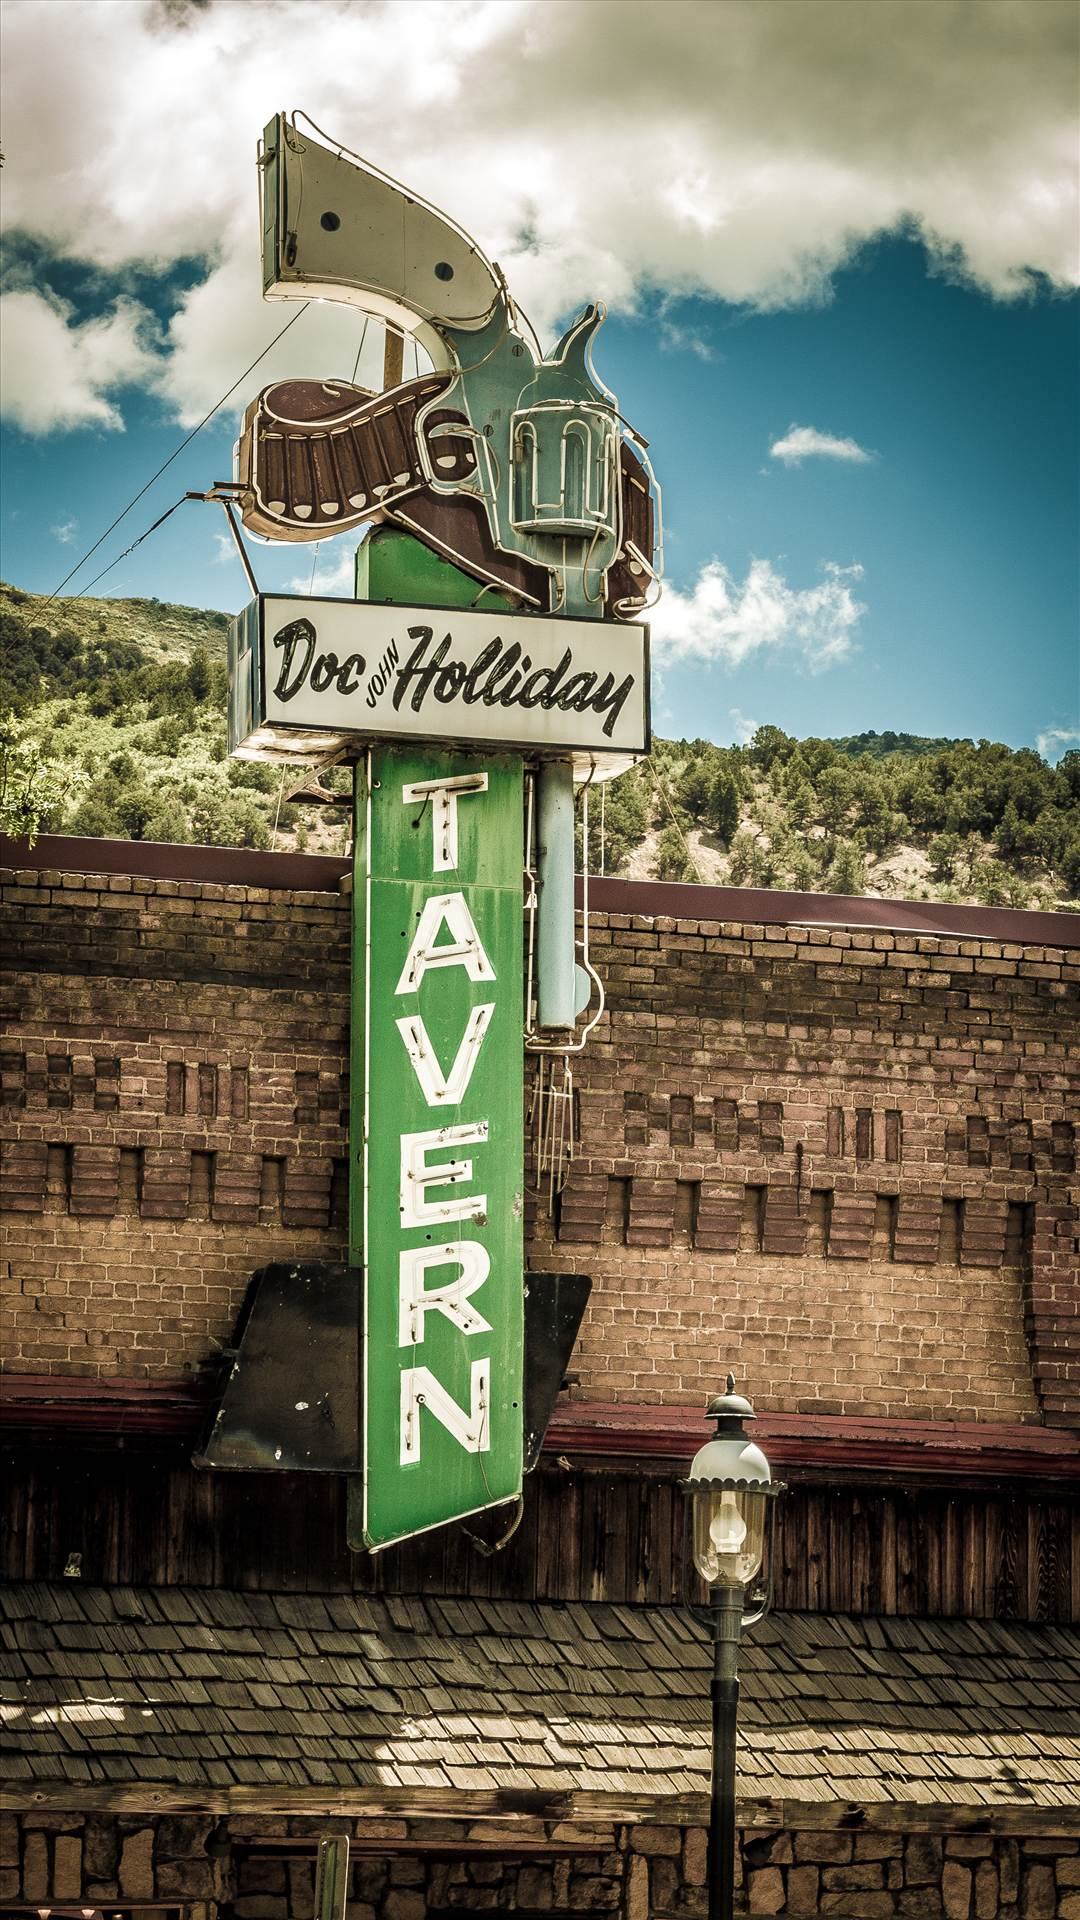 Doc Holliday Tavern in Glenwood Springs - The famous sign for the Doc Holliday Tavern in Glenwood Springs by Scott Smith Photos